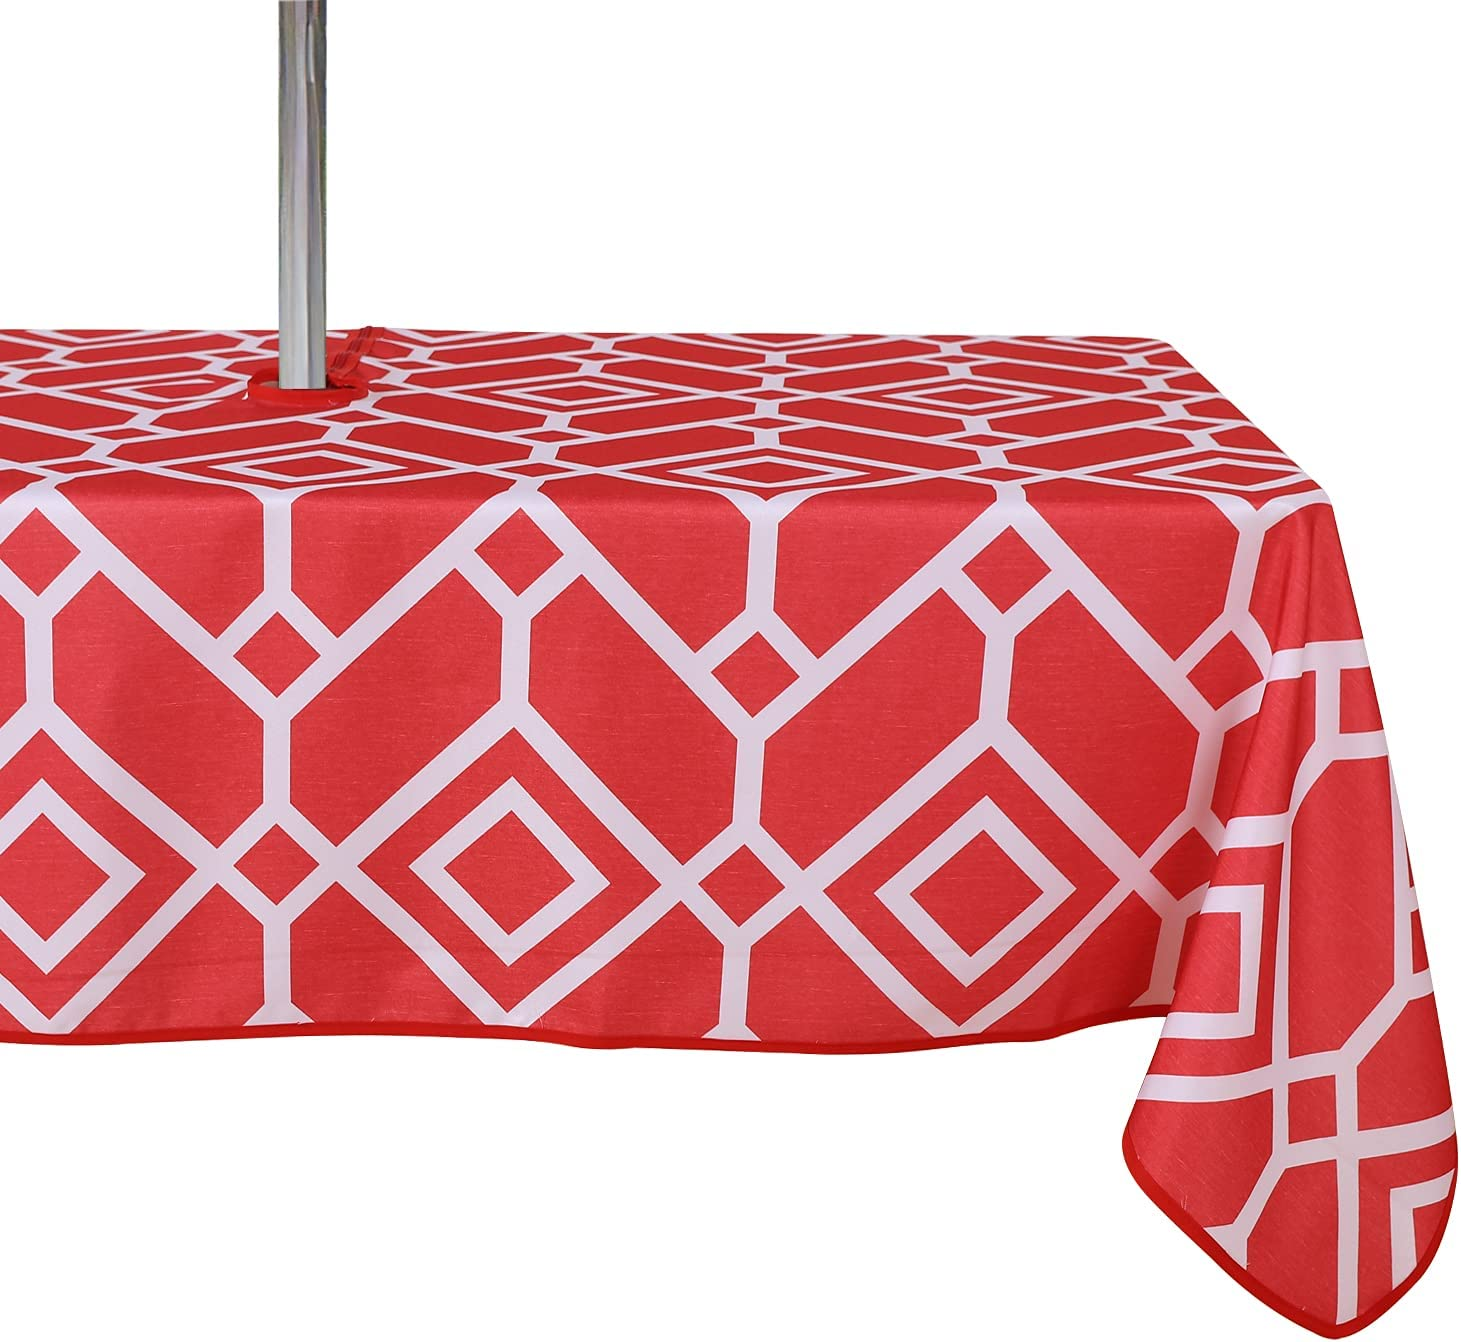 price Popularity LUSHVIDA Moroccan Outdoor and Indoor Washable Water Tablecloth -